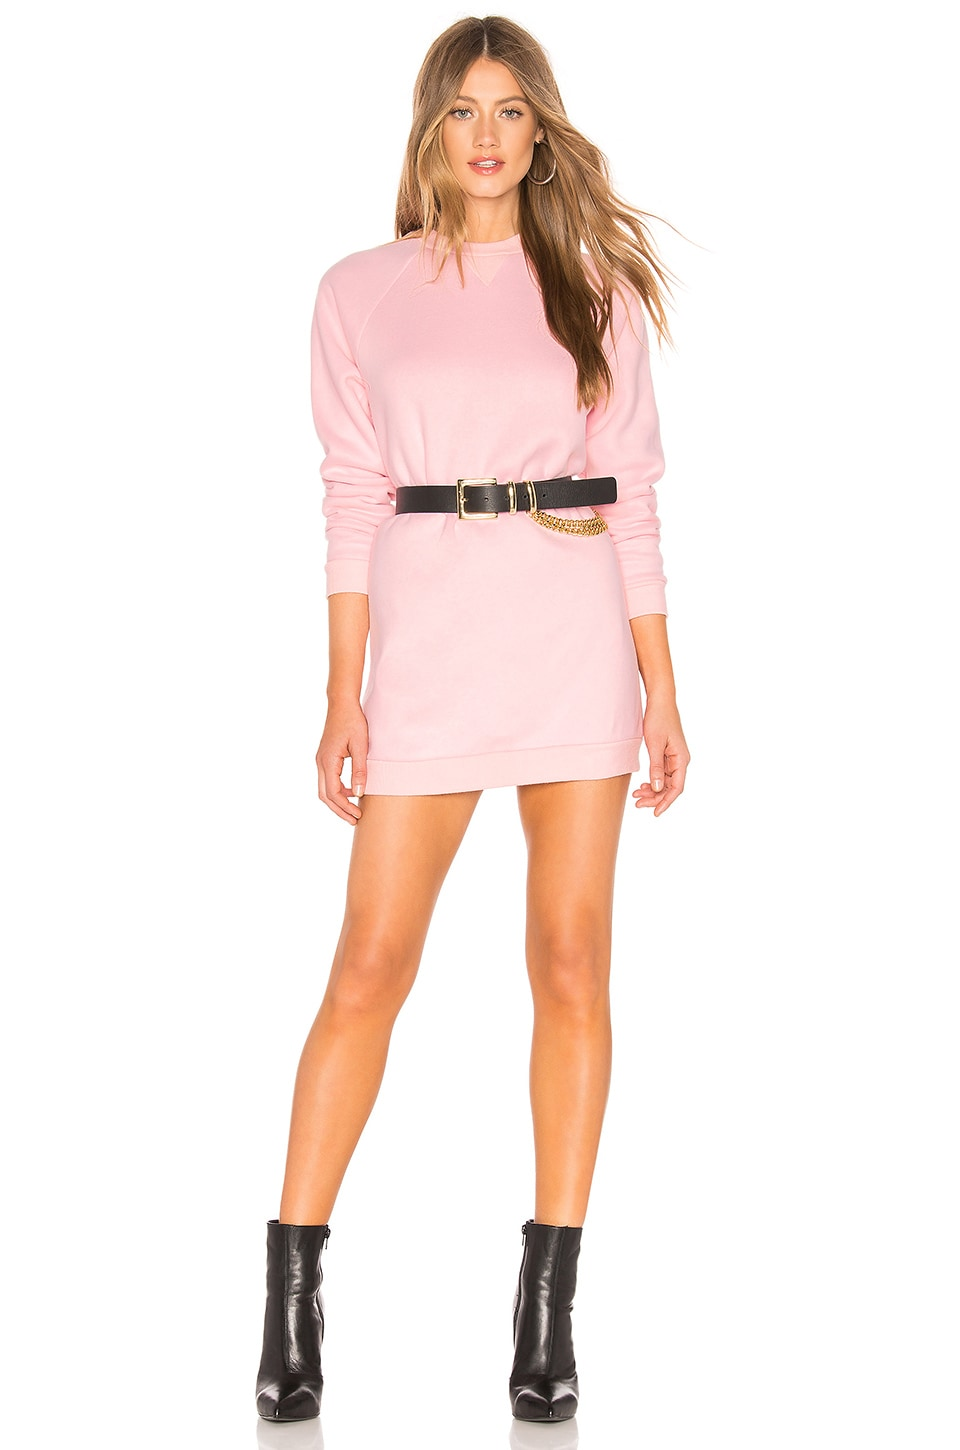 Lovers + Friends Charlie Sweatshirt Dress in Light Pink